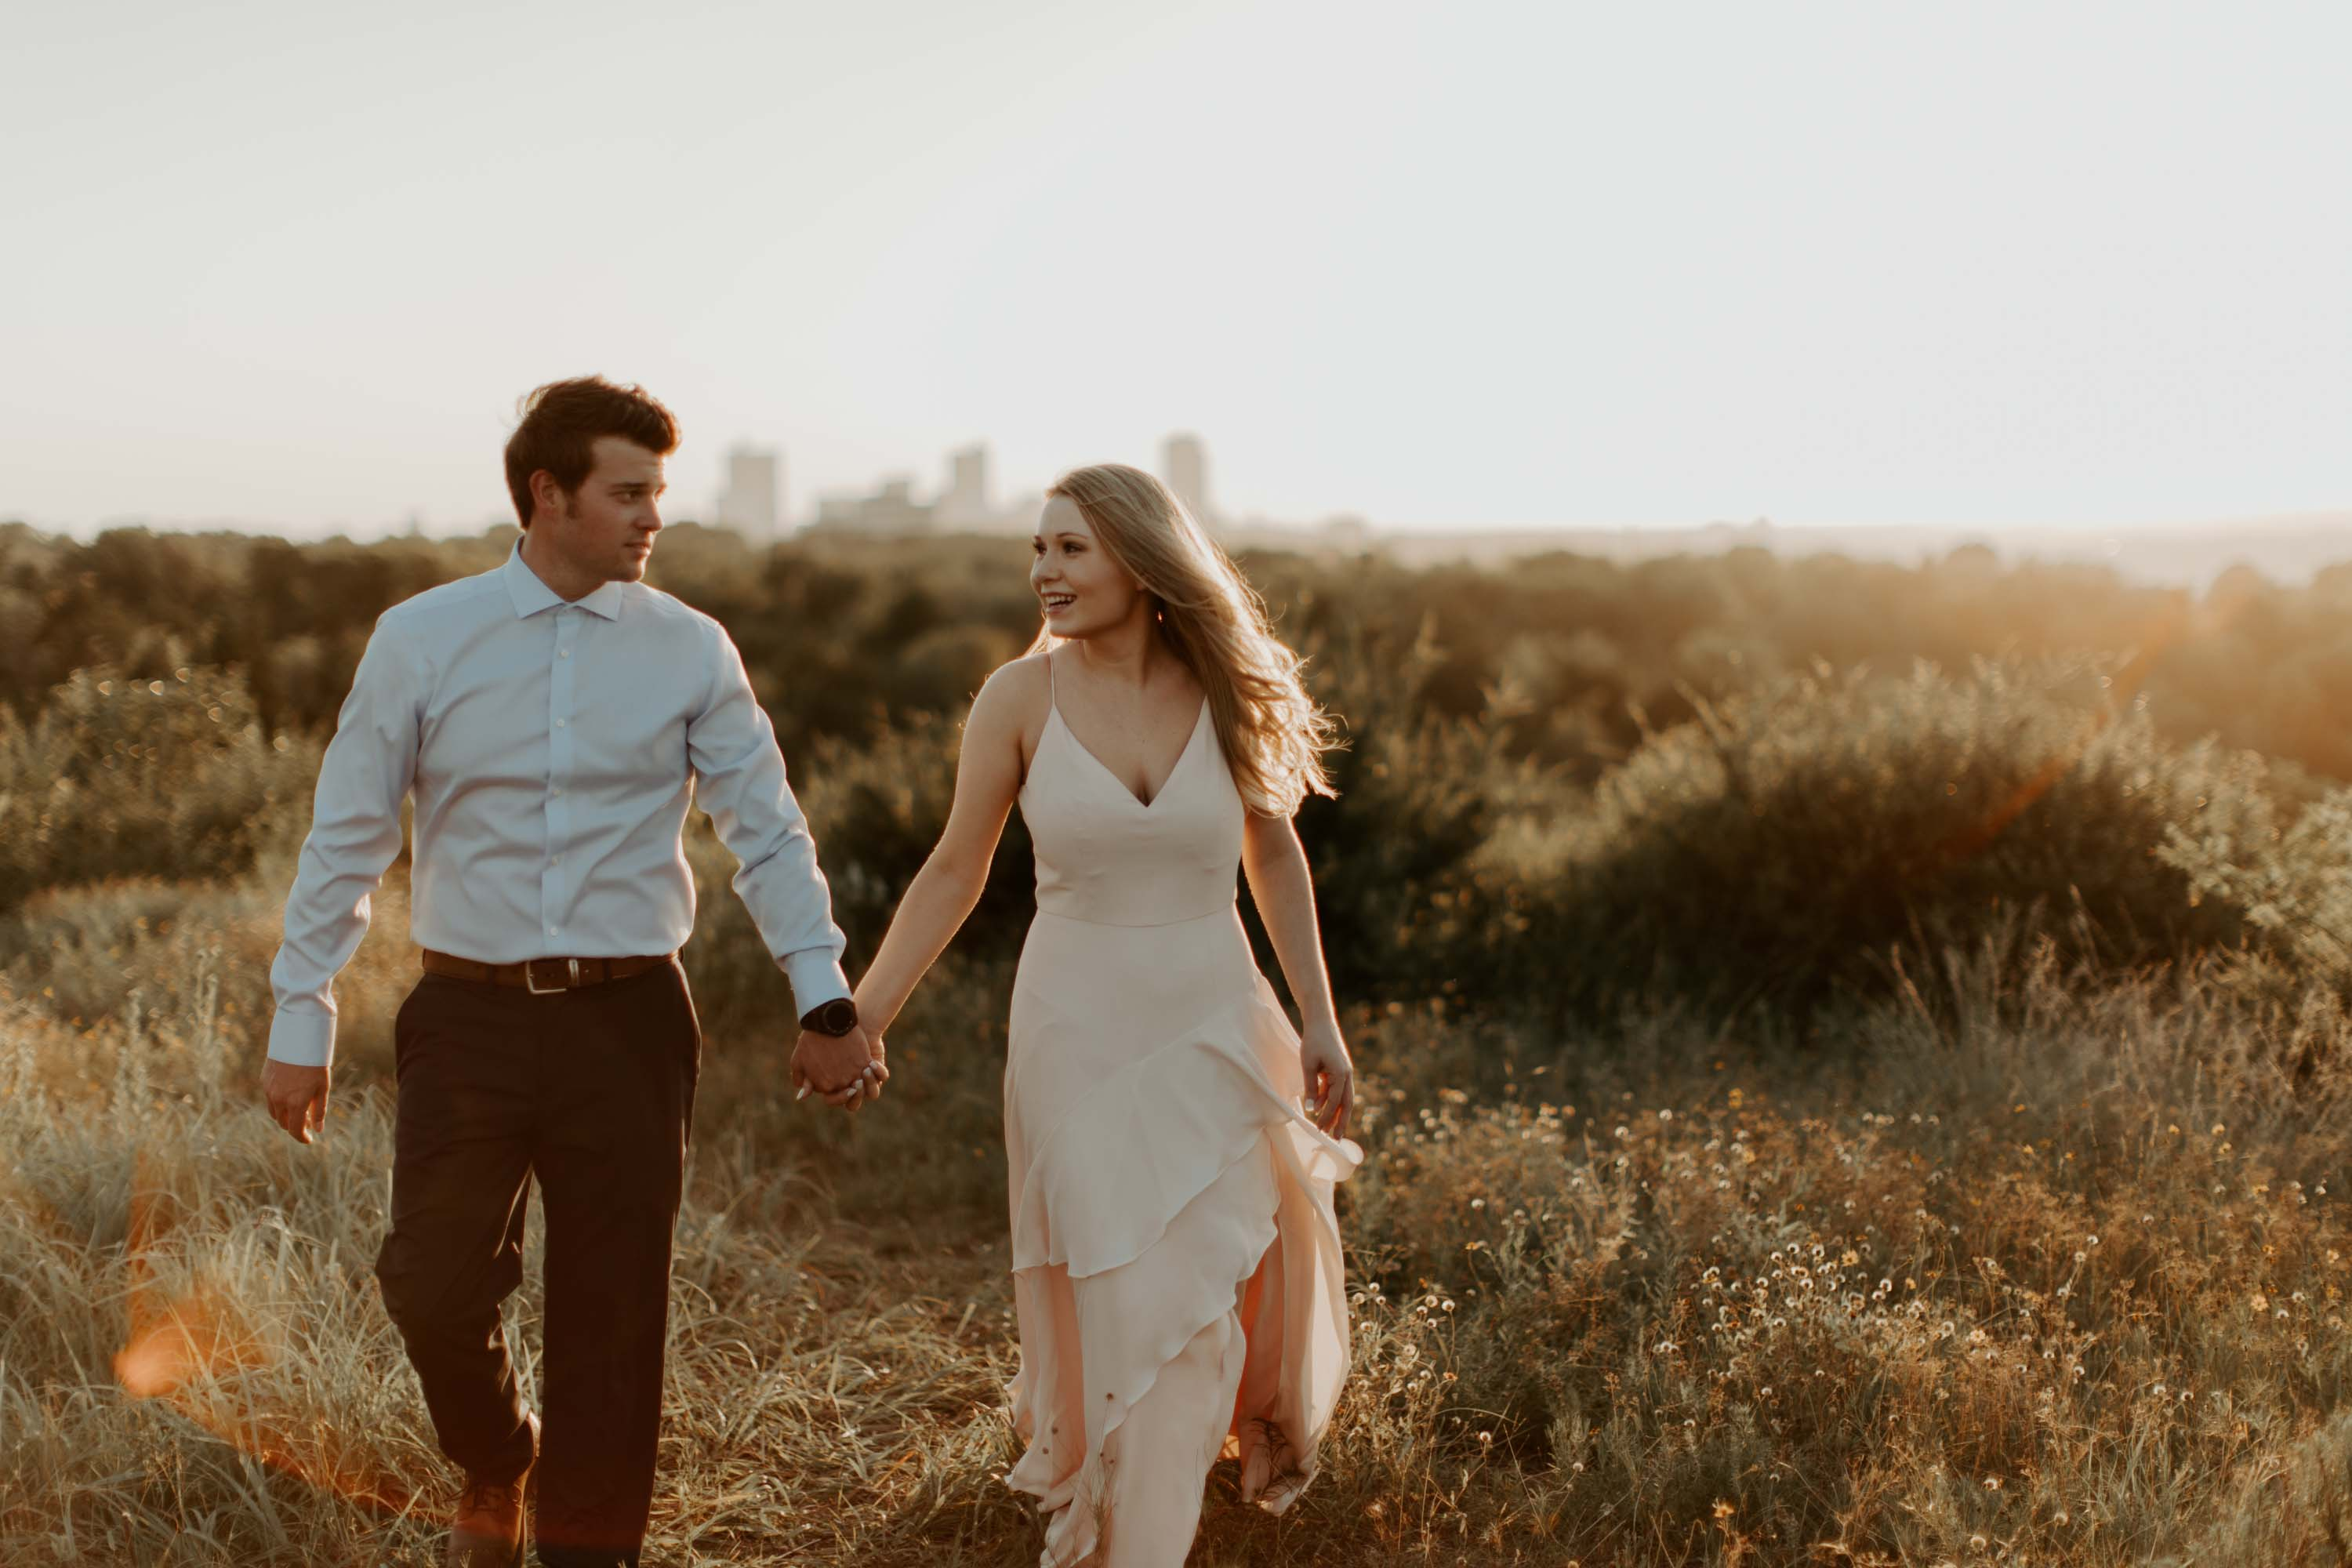 couple holding hands and walking in a field during golden hour